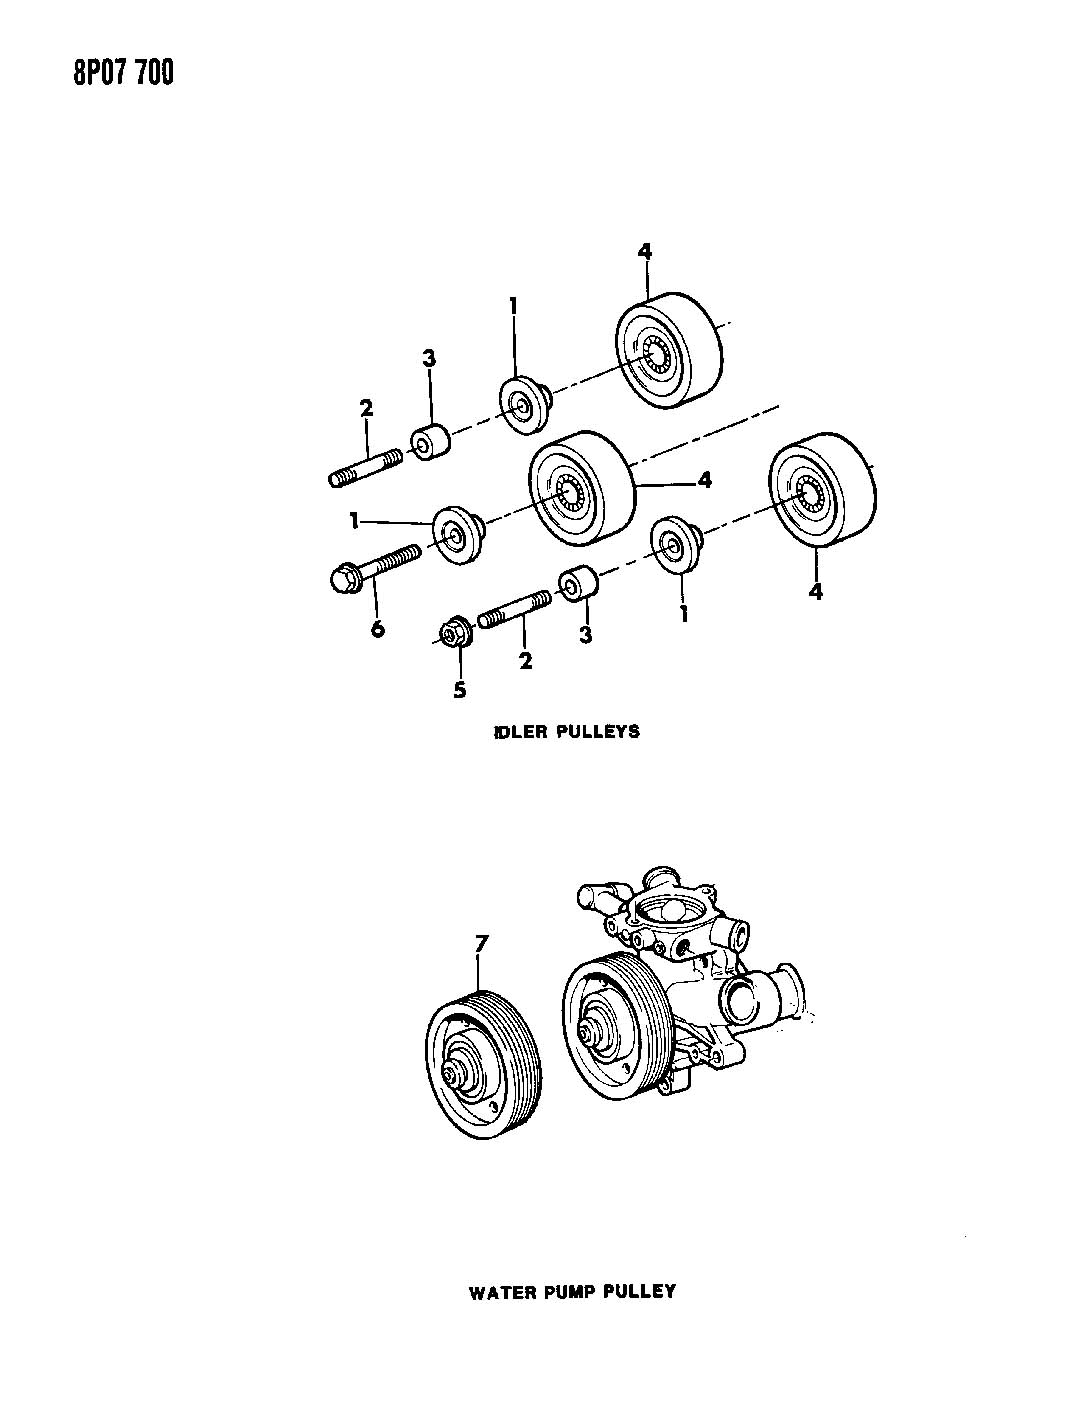 Diagram DRIVE PULLEYS 6 CYLINDER ENGINE for your Dodge